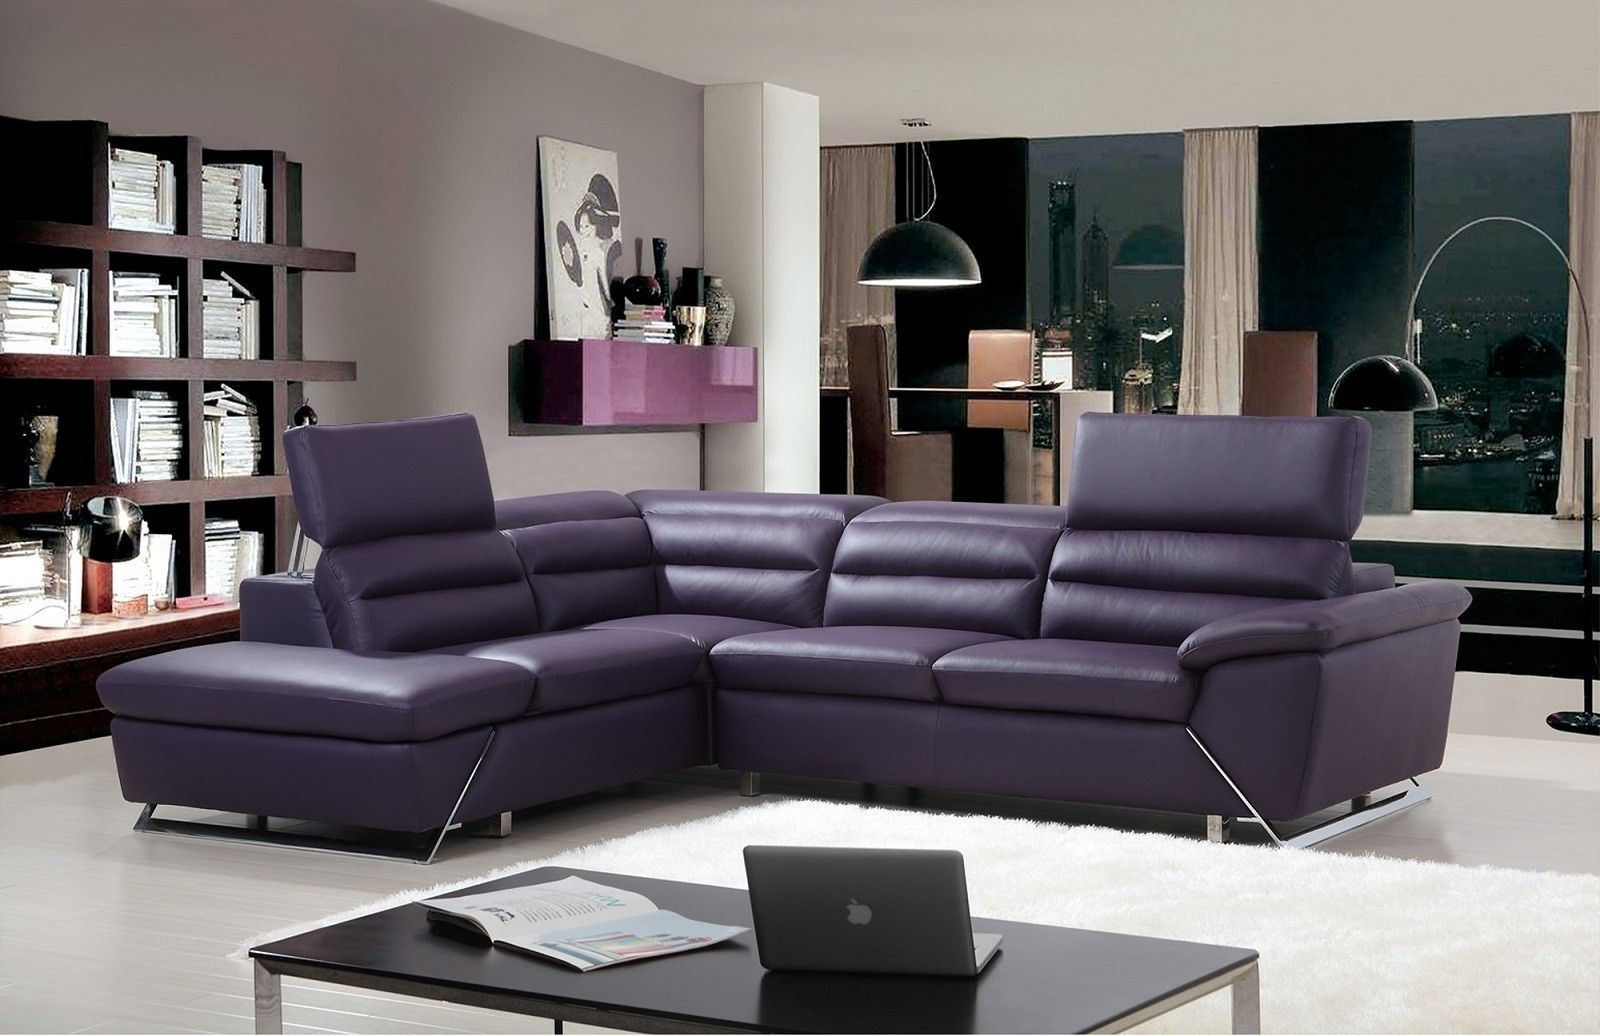 Modern Sectional Sofas What goes well with brown leather sofa for trendy look sofa sofa Pinterest Brown Leather sofas and Leather sofa brown